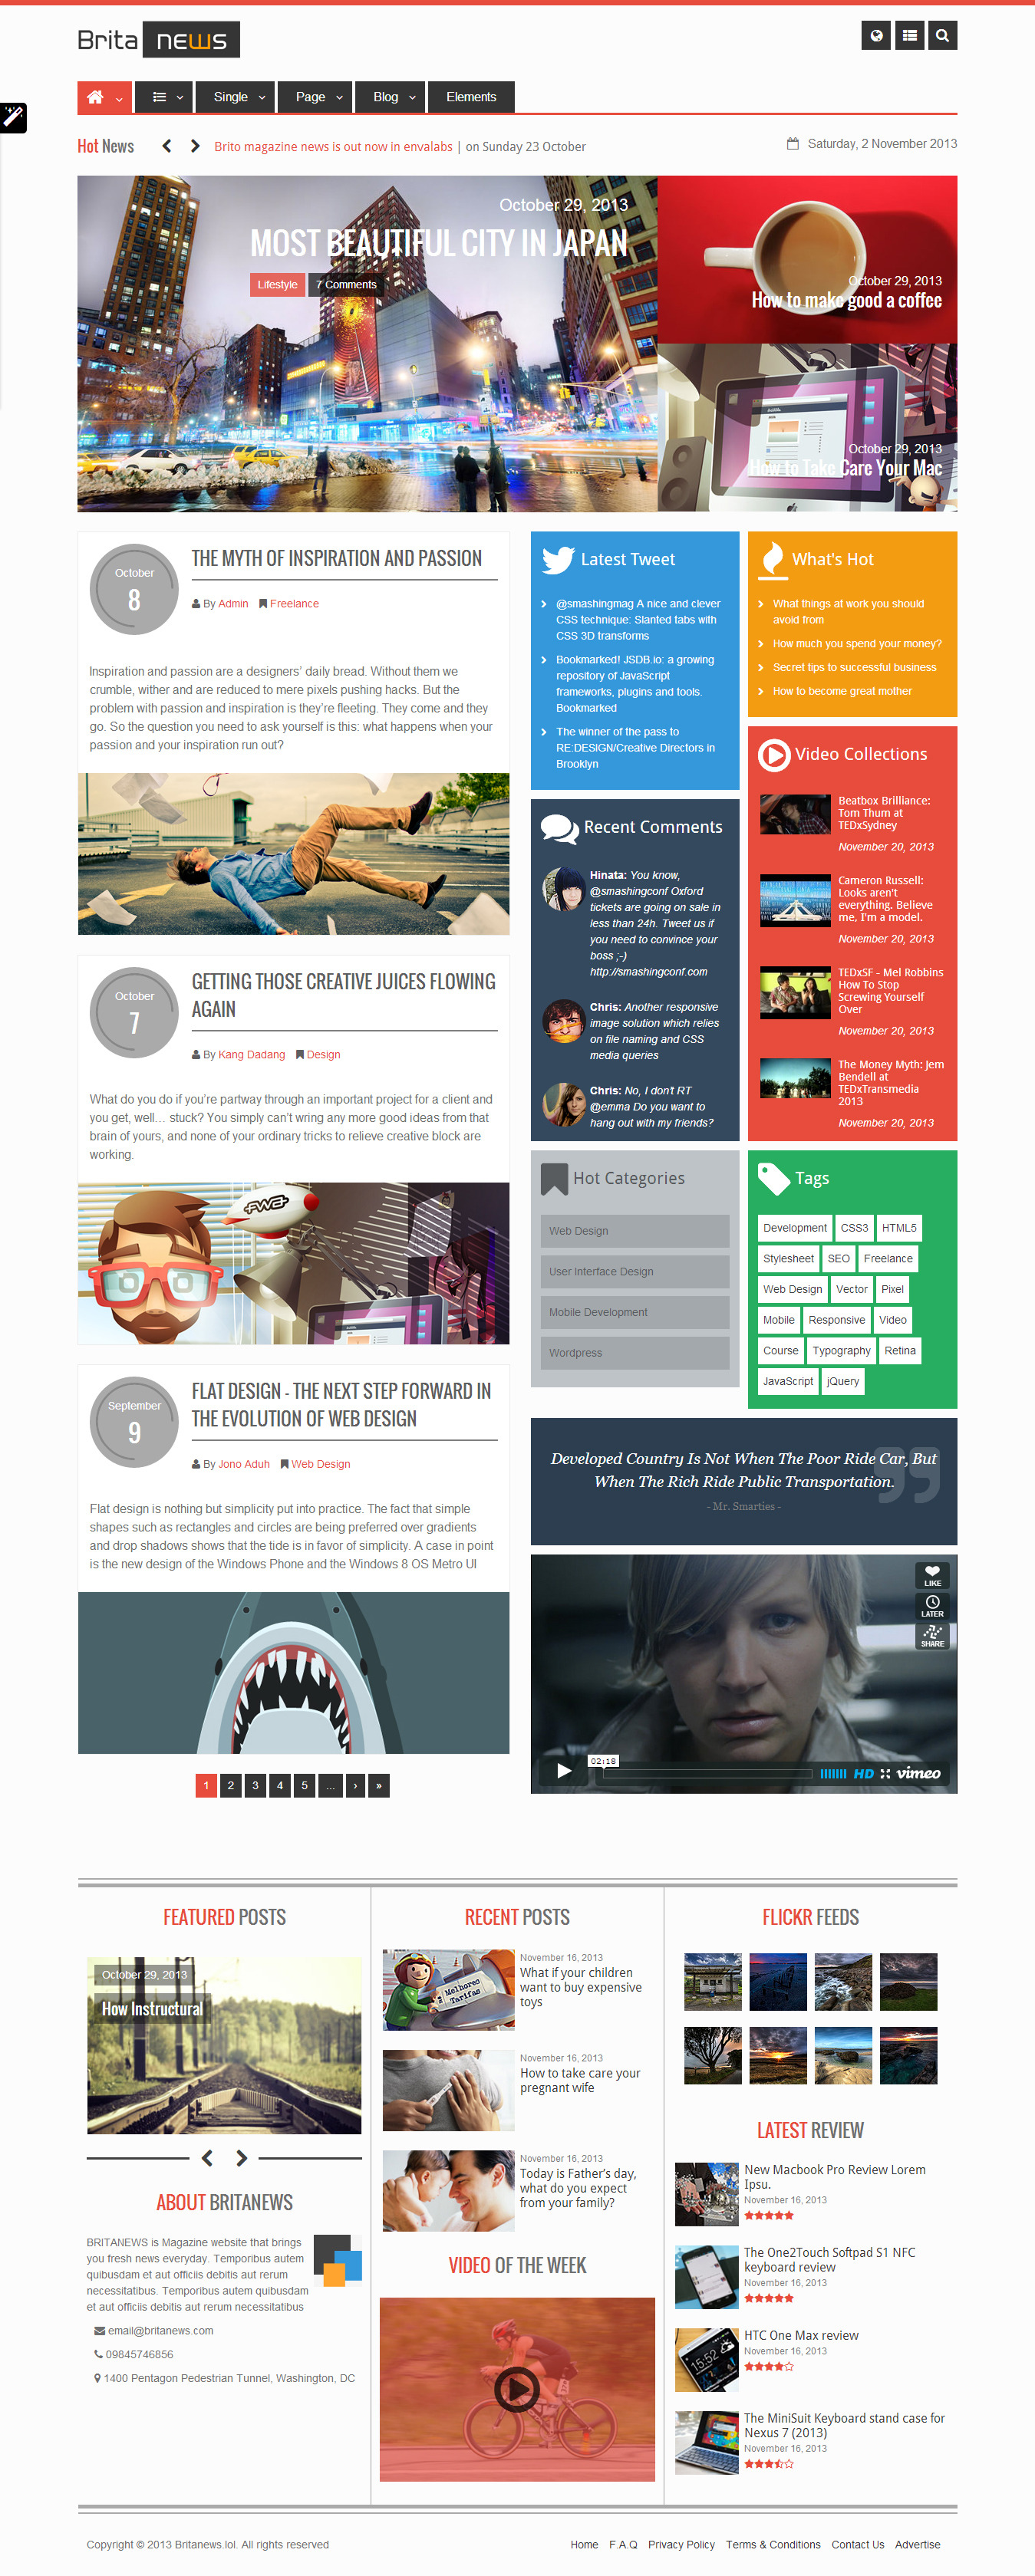 BritaNews - Gorgeous Animated News/Magazine Theme